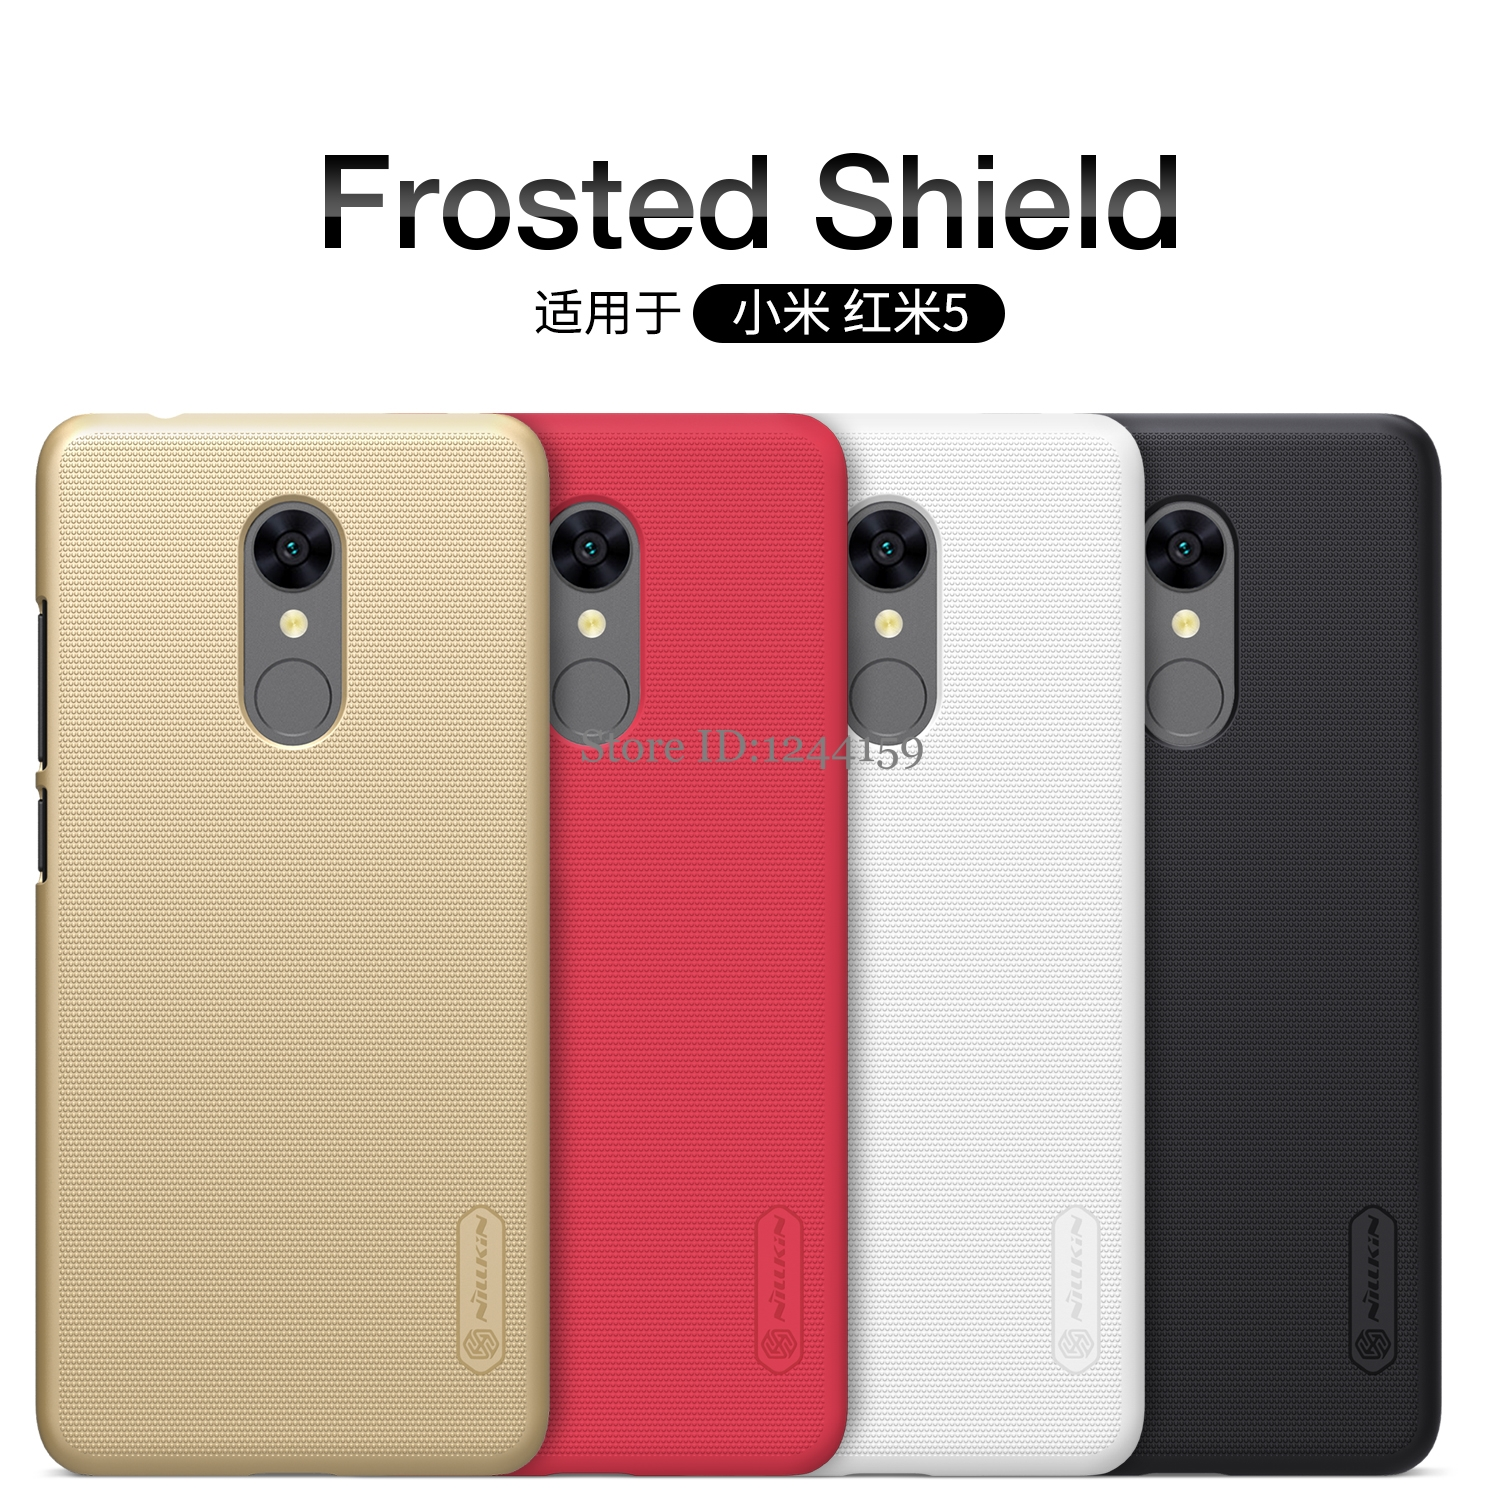 Aliexpress Buy Xiaomi Redmi 5 case Xiaomi Redmi 5 Plus cover Nillkin frosted hard plastic back cover for redmi5 plus case with Gift from Reliable